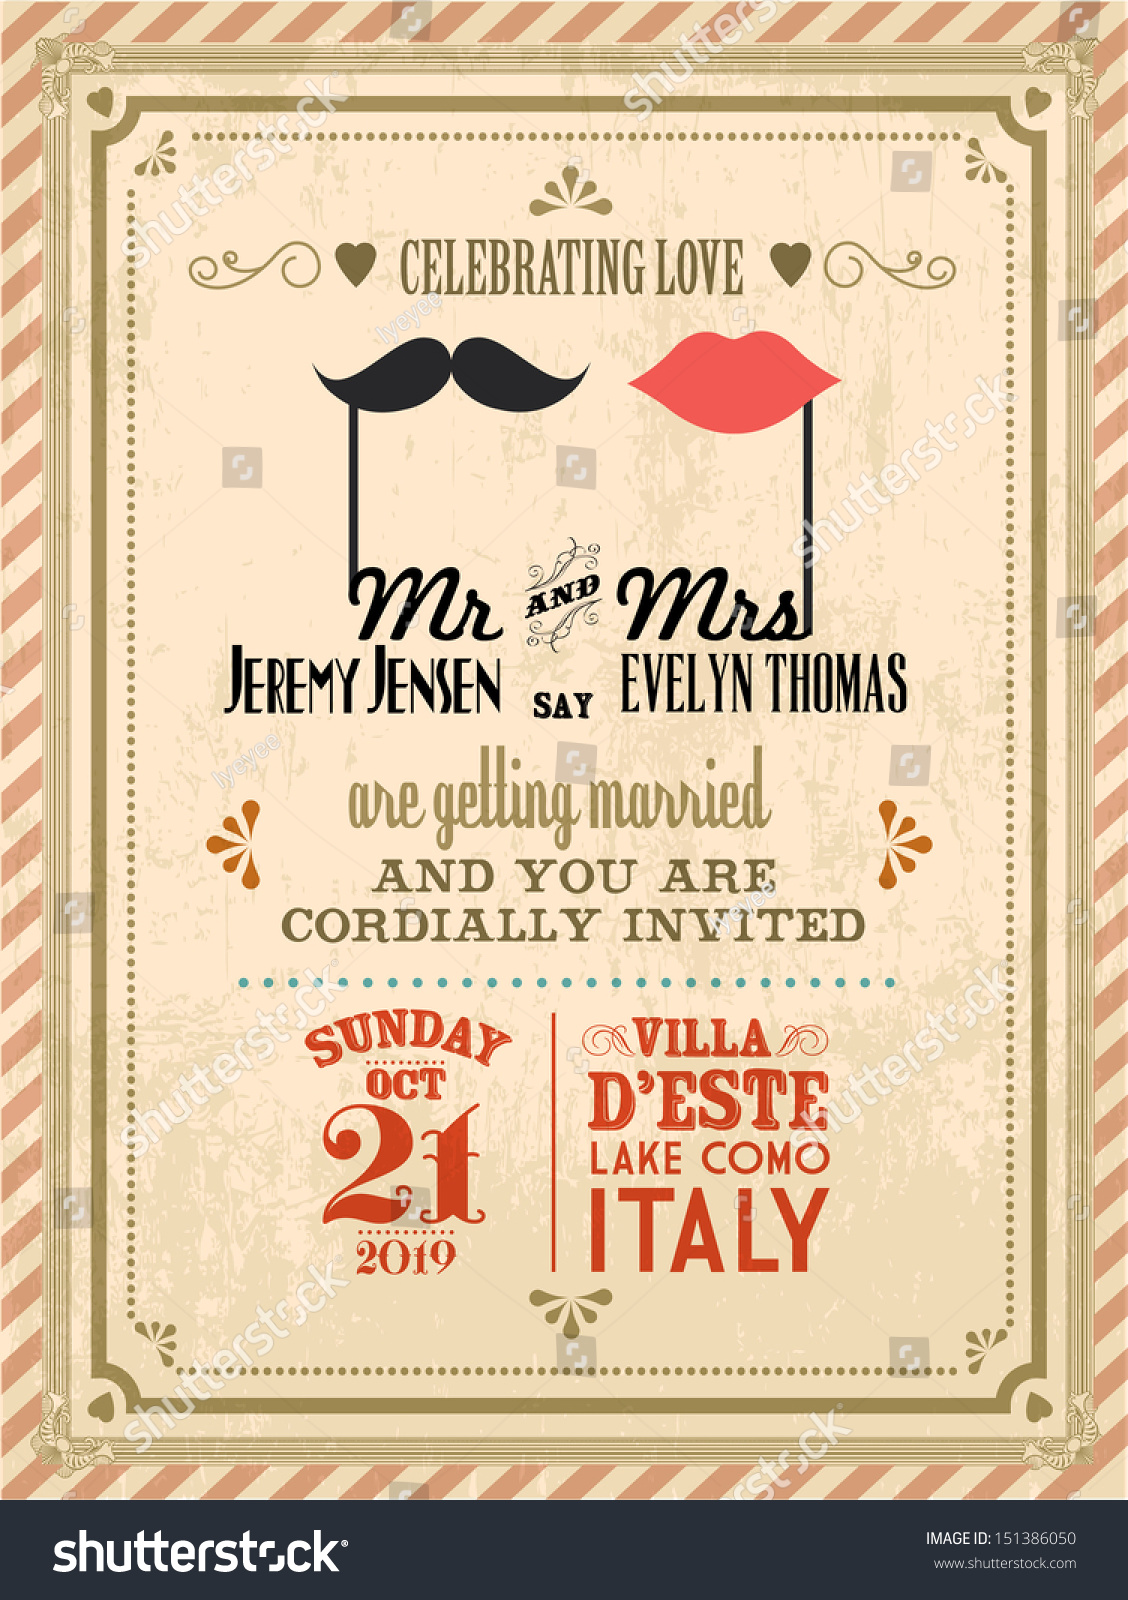 vintage wedding invitations vintage wedding invitation card template 8323